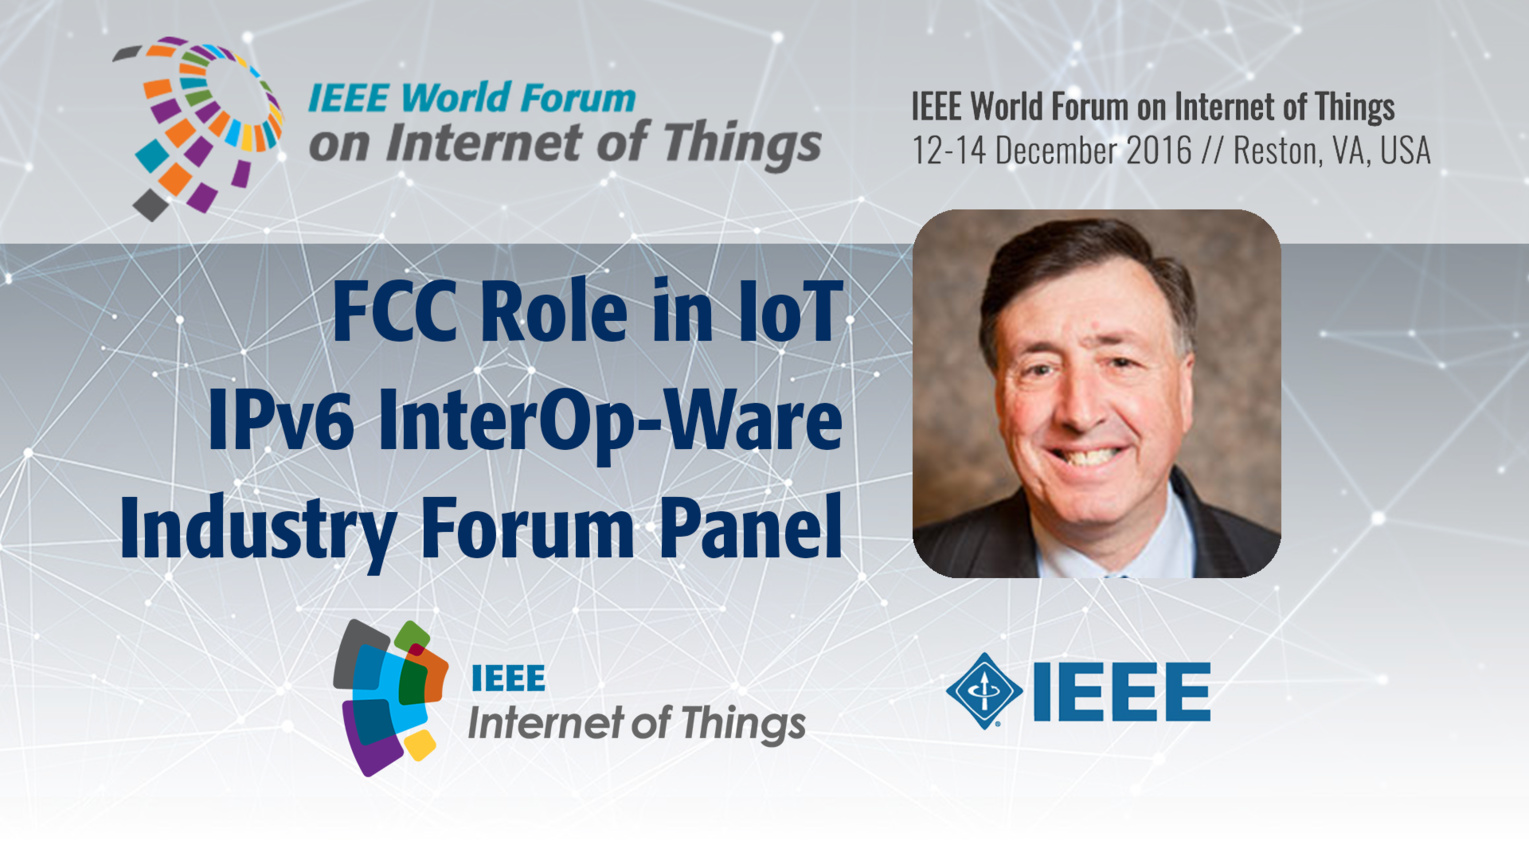 Julius Knapp: FCC Role in the Internet of Things - InterOp-Ware Industry Forum Panel: WF IoT 2016